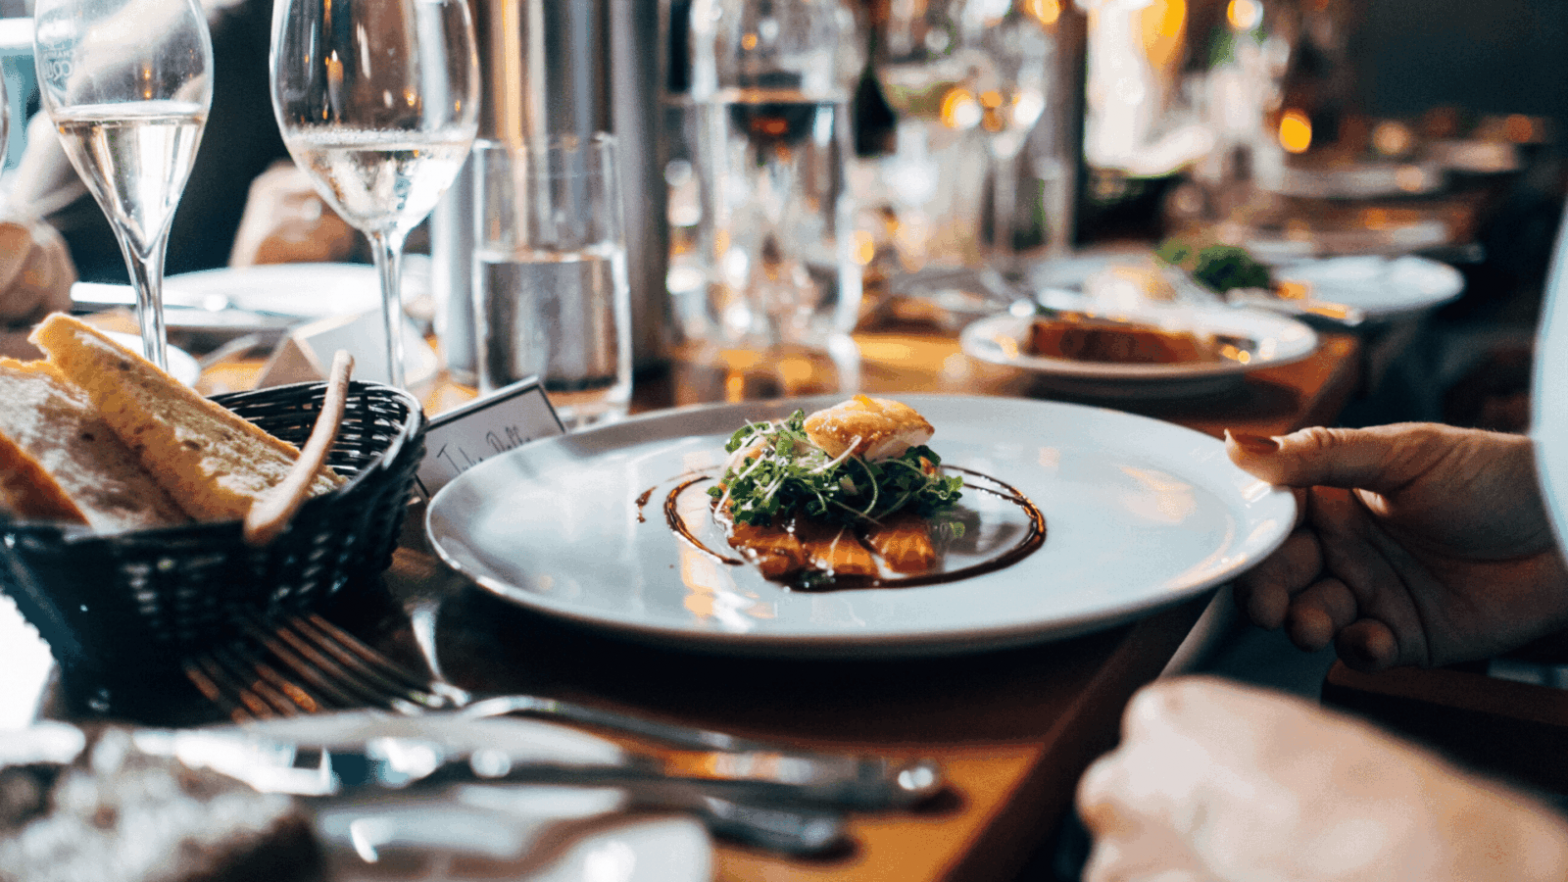 Understand How to Improve Restaurant Services